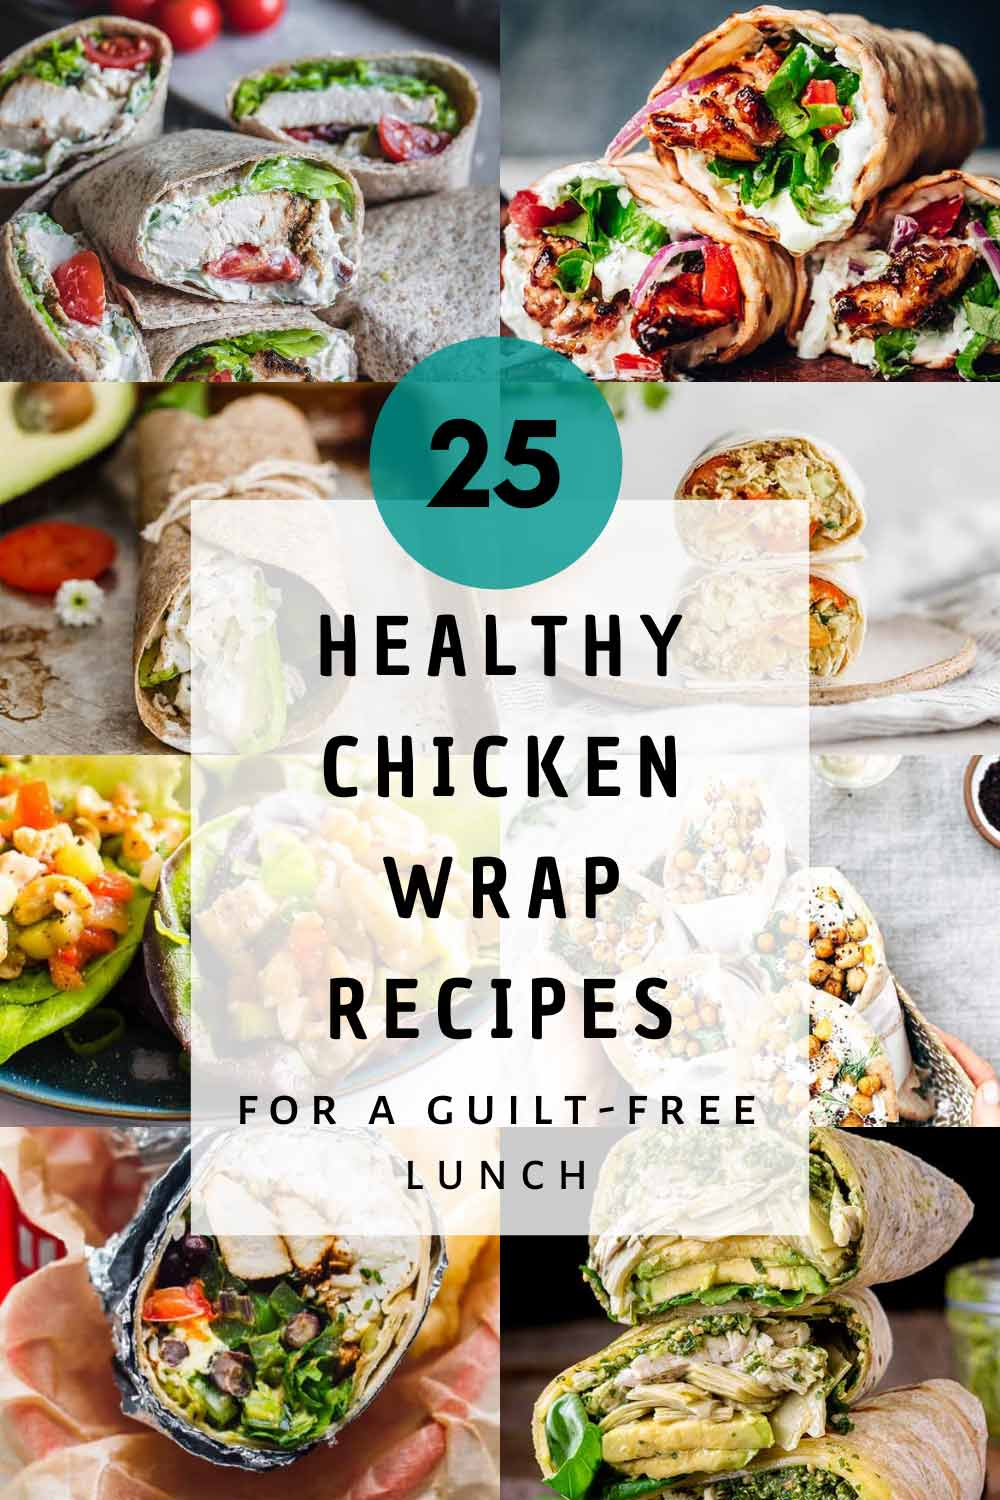 Healthy chicken wrap recipes featured image